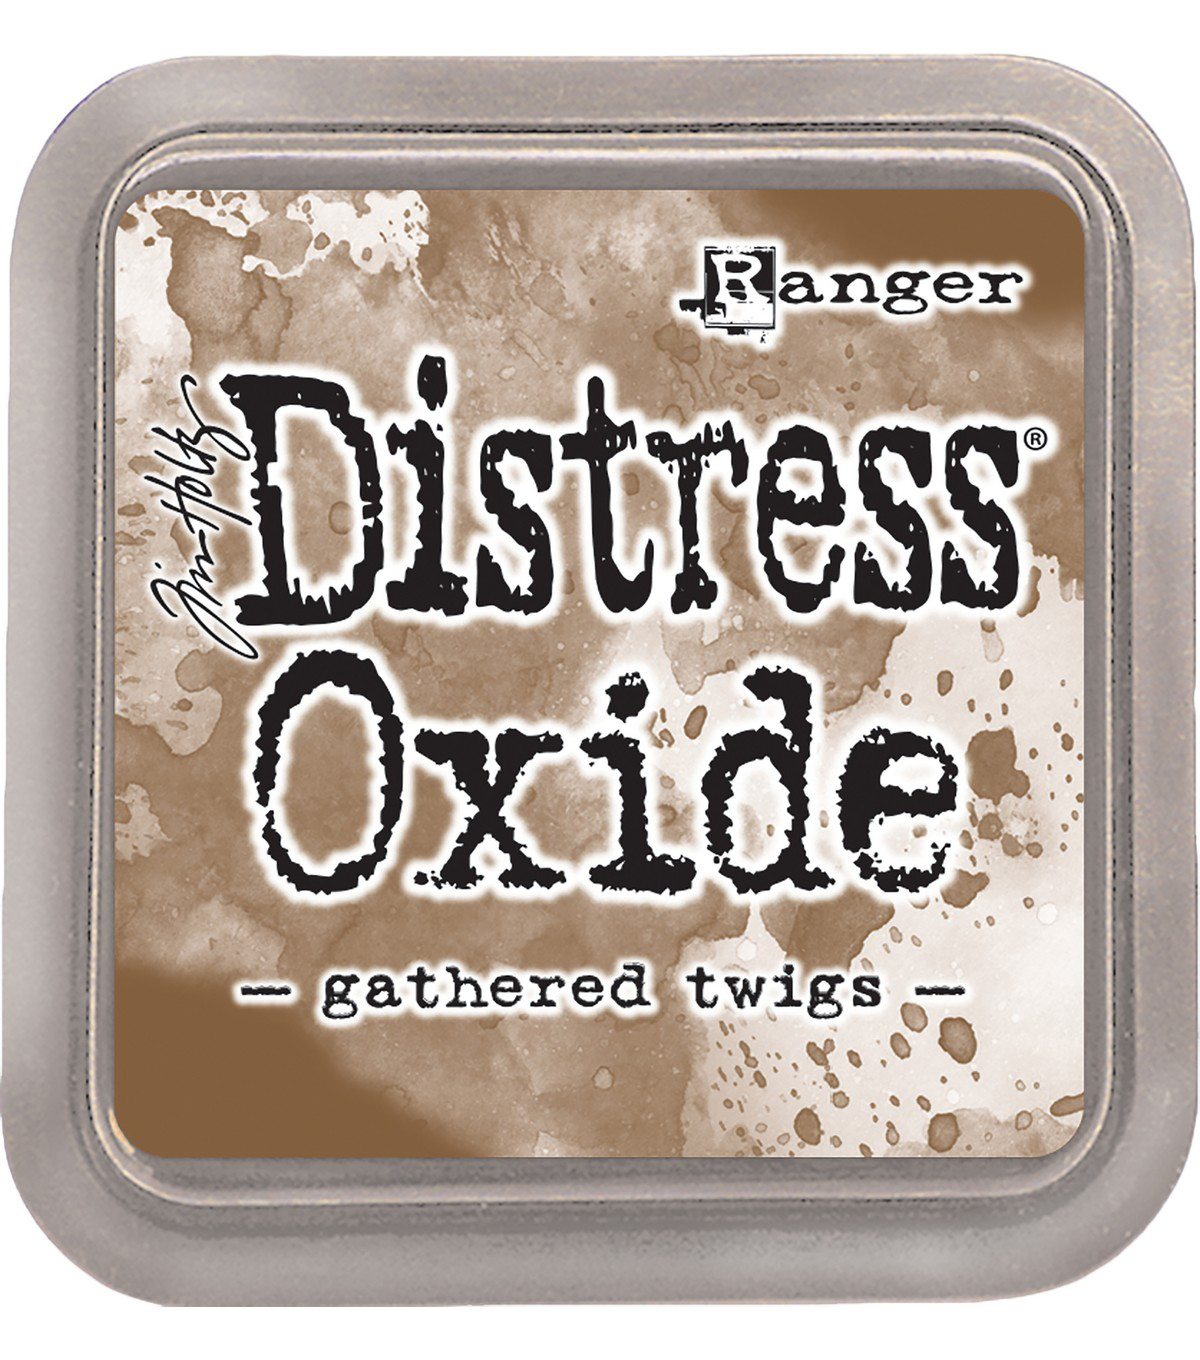 Tim Holtz Distress Oxide Ink Pad, Gathered Twigs